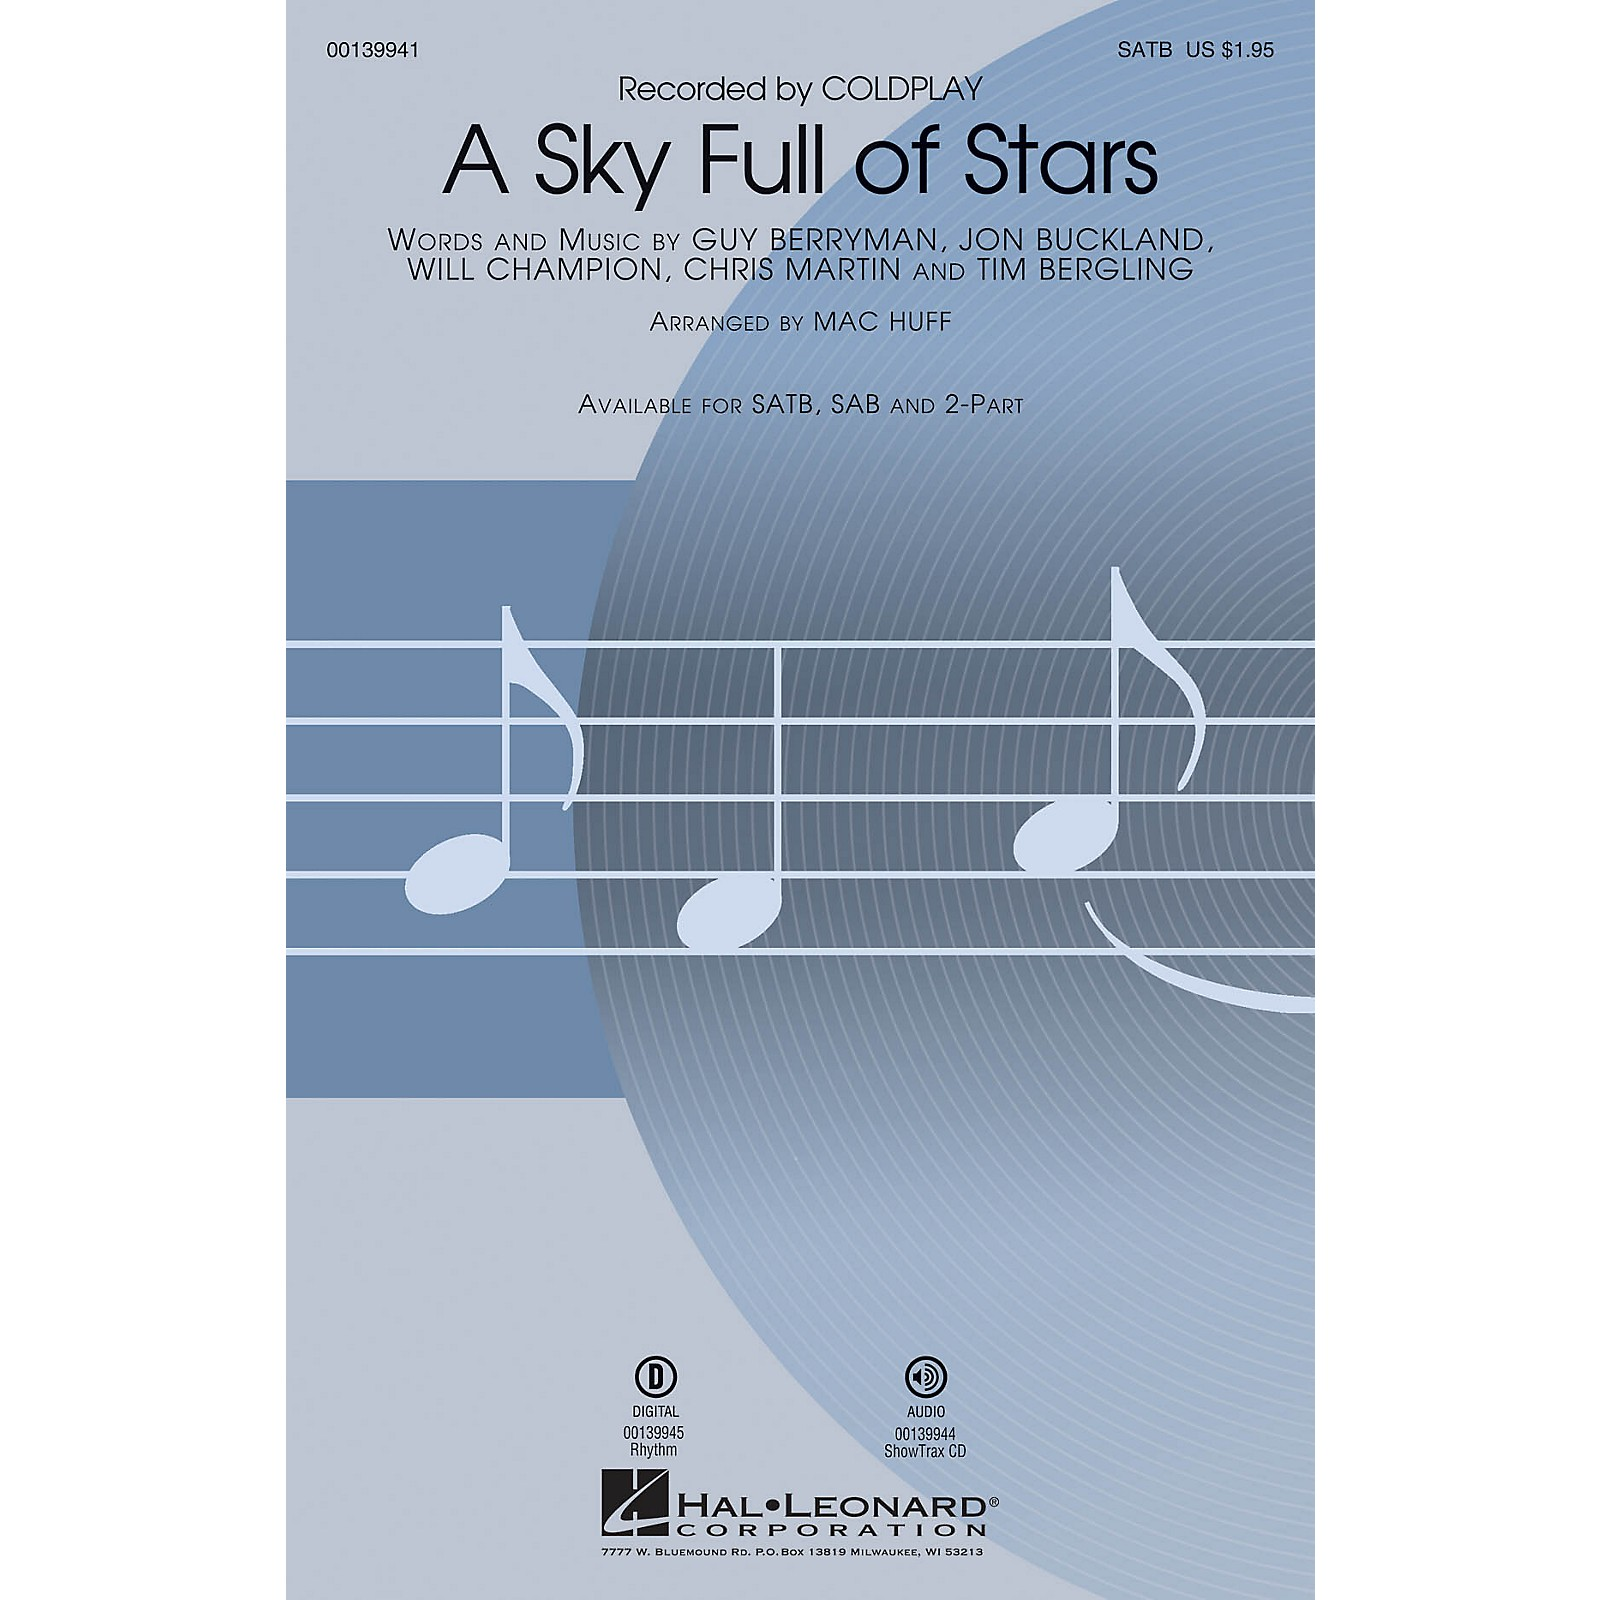 Hal Leonard A Sky Full of Stars ShowTrax CD by Coldplay Arranged by Mac Huff